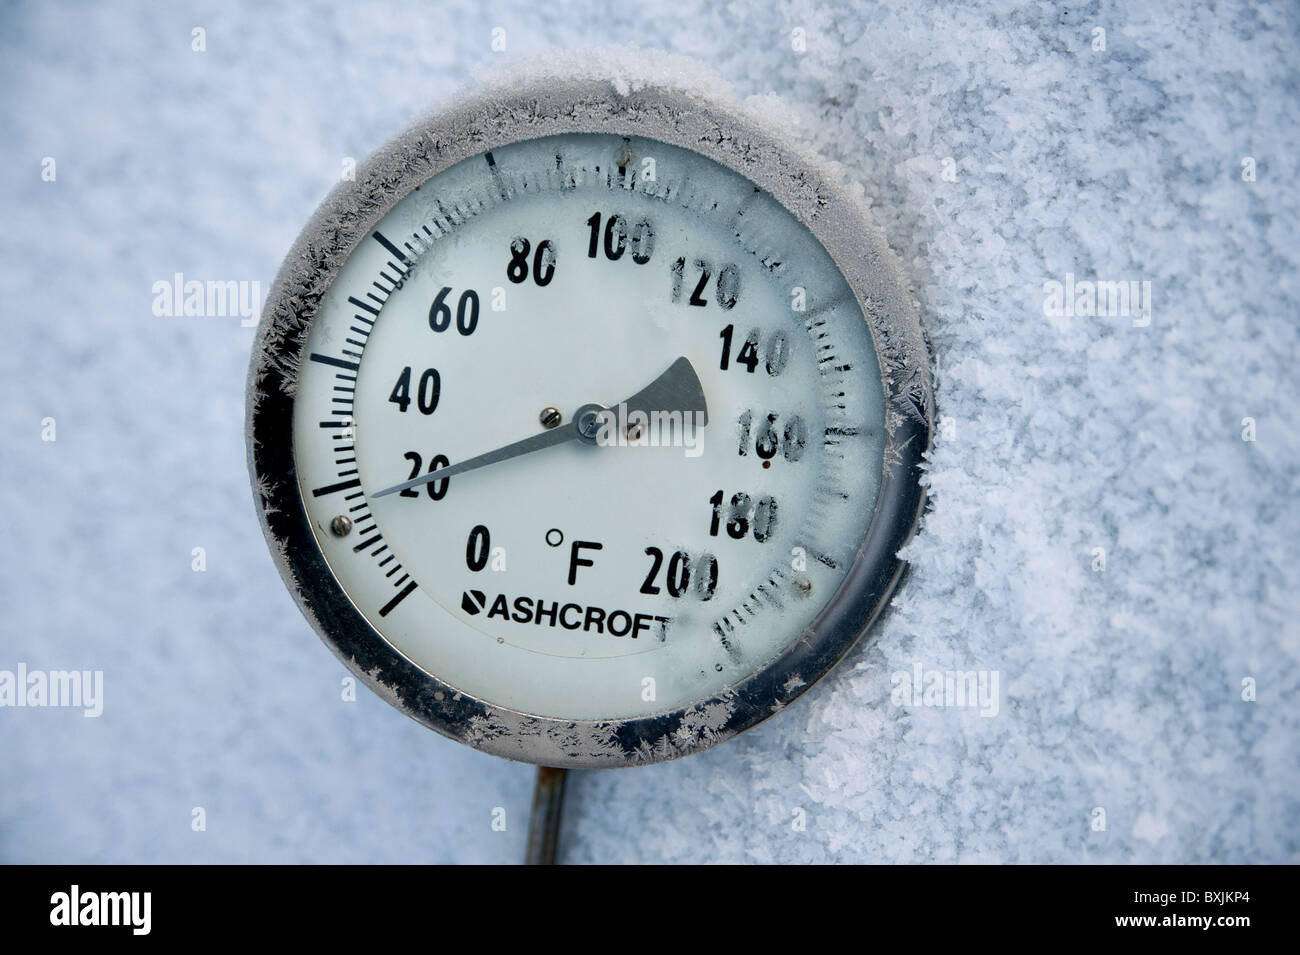 Thermometer Placed In Snow Showing The Ambient Air Temperature As Sevendegrees Fahrenheit Or Roughly Minus Eight Celsius